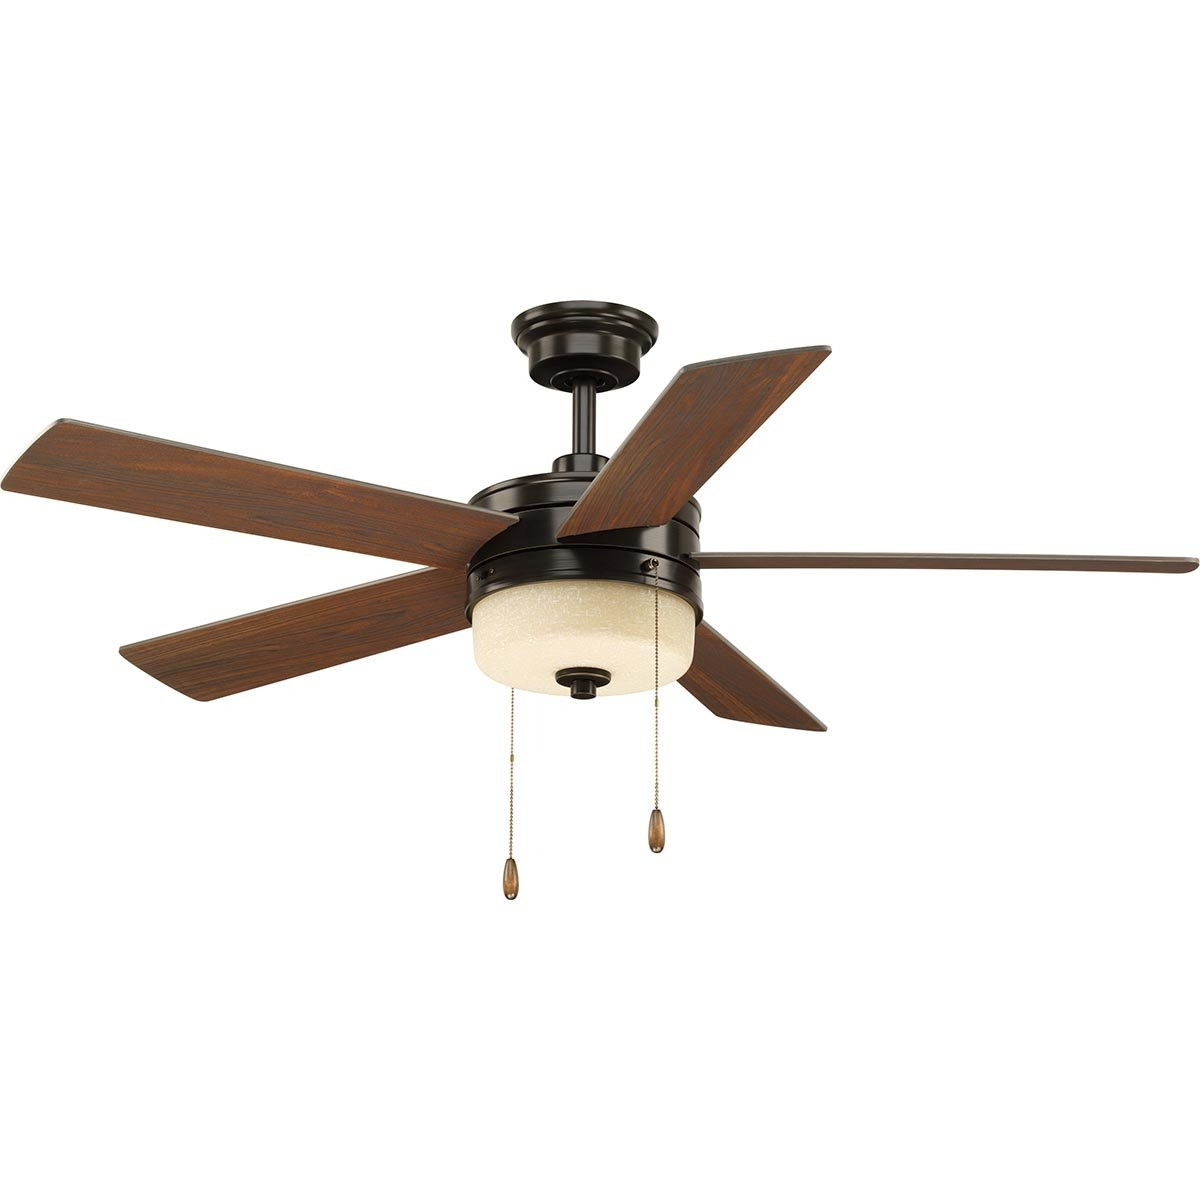 """Well Known 54"""" Van Nest 5 Blade Led Ceiling Fan, Light Kit Included For Sheyla 5 Blade Led Ceiling Fans (View 19 of 20)"""